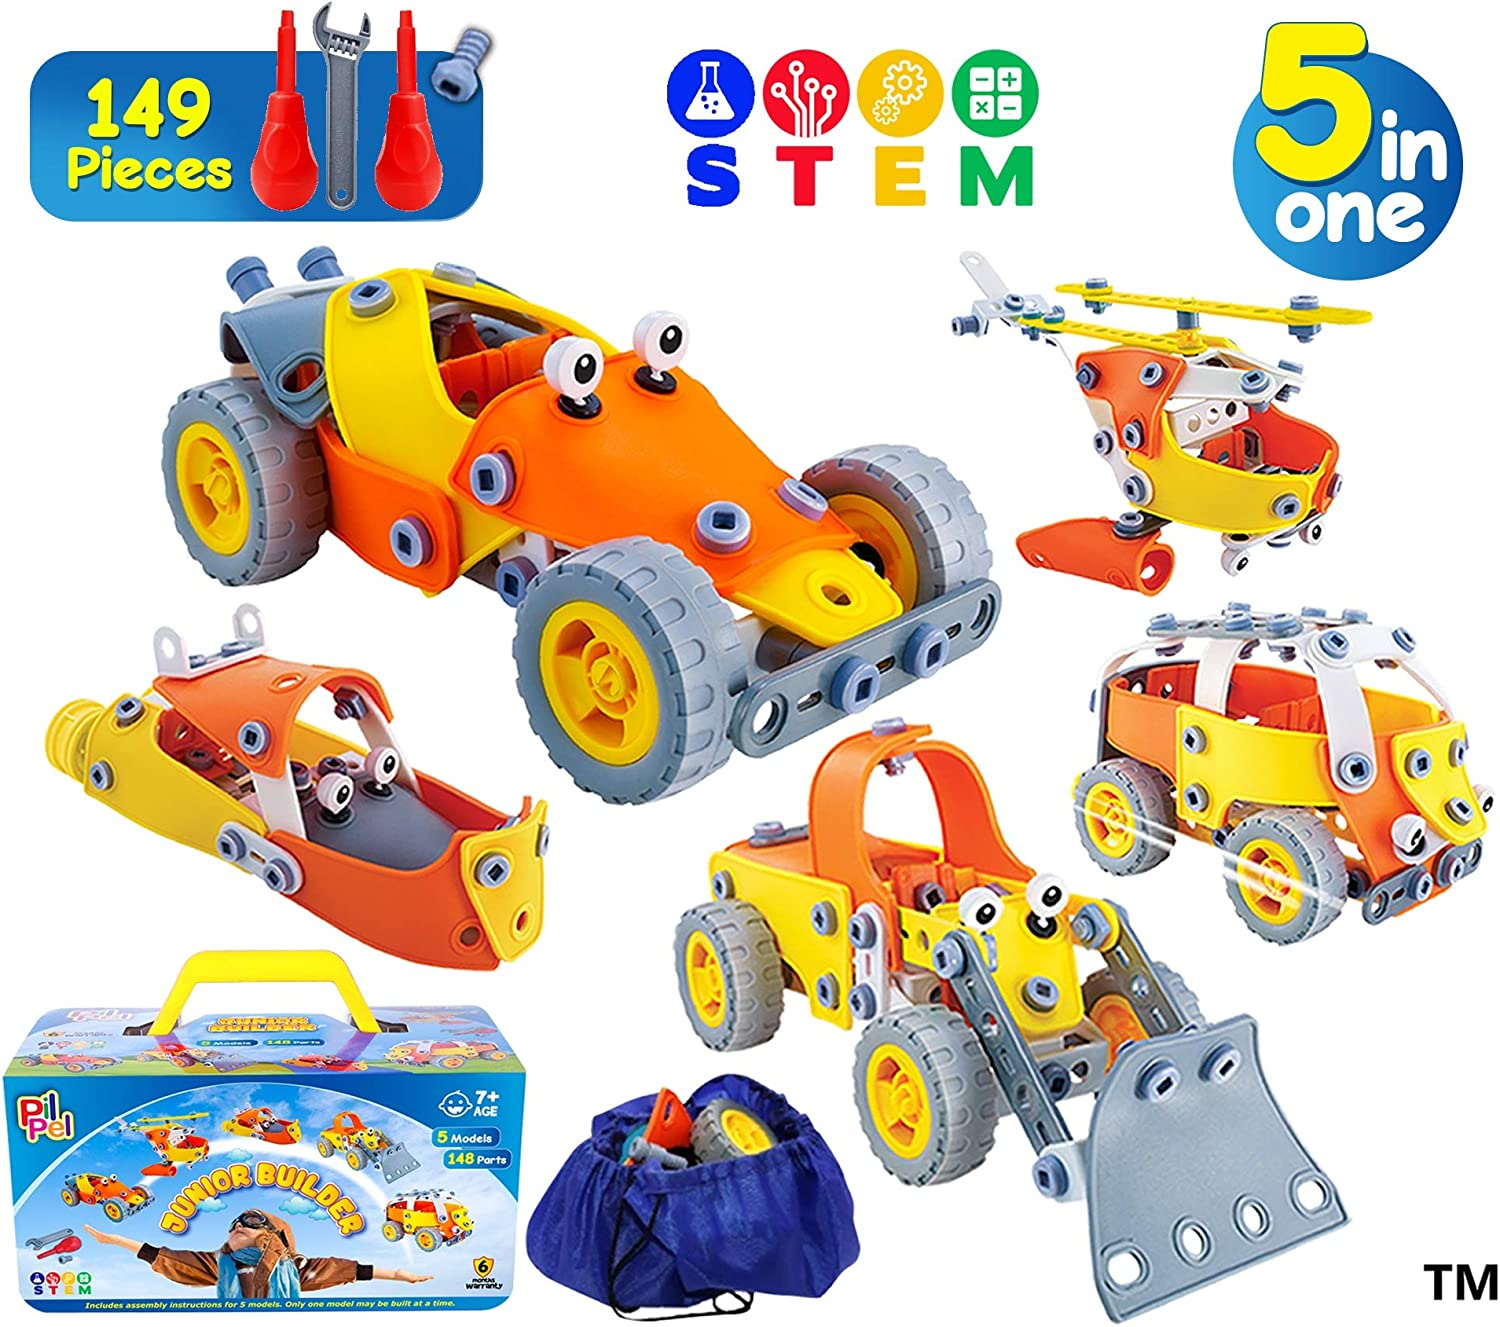 PilPel Educational Creative Stem Building Toy Set for Boys and Girls Age 7 8 9 10 148 Pcs 5in1 Erector Kids Stem Kit Build and Play Vehicles Models Stem Activities- in A Storage Gift Box